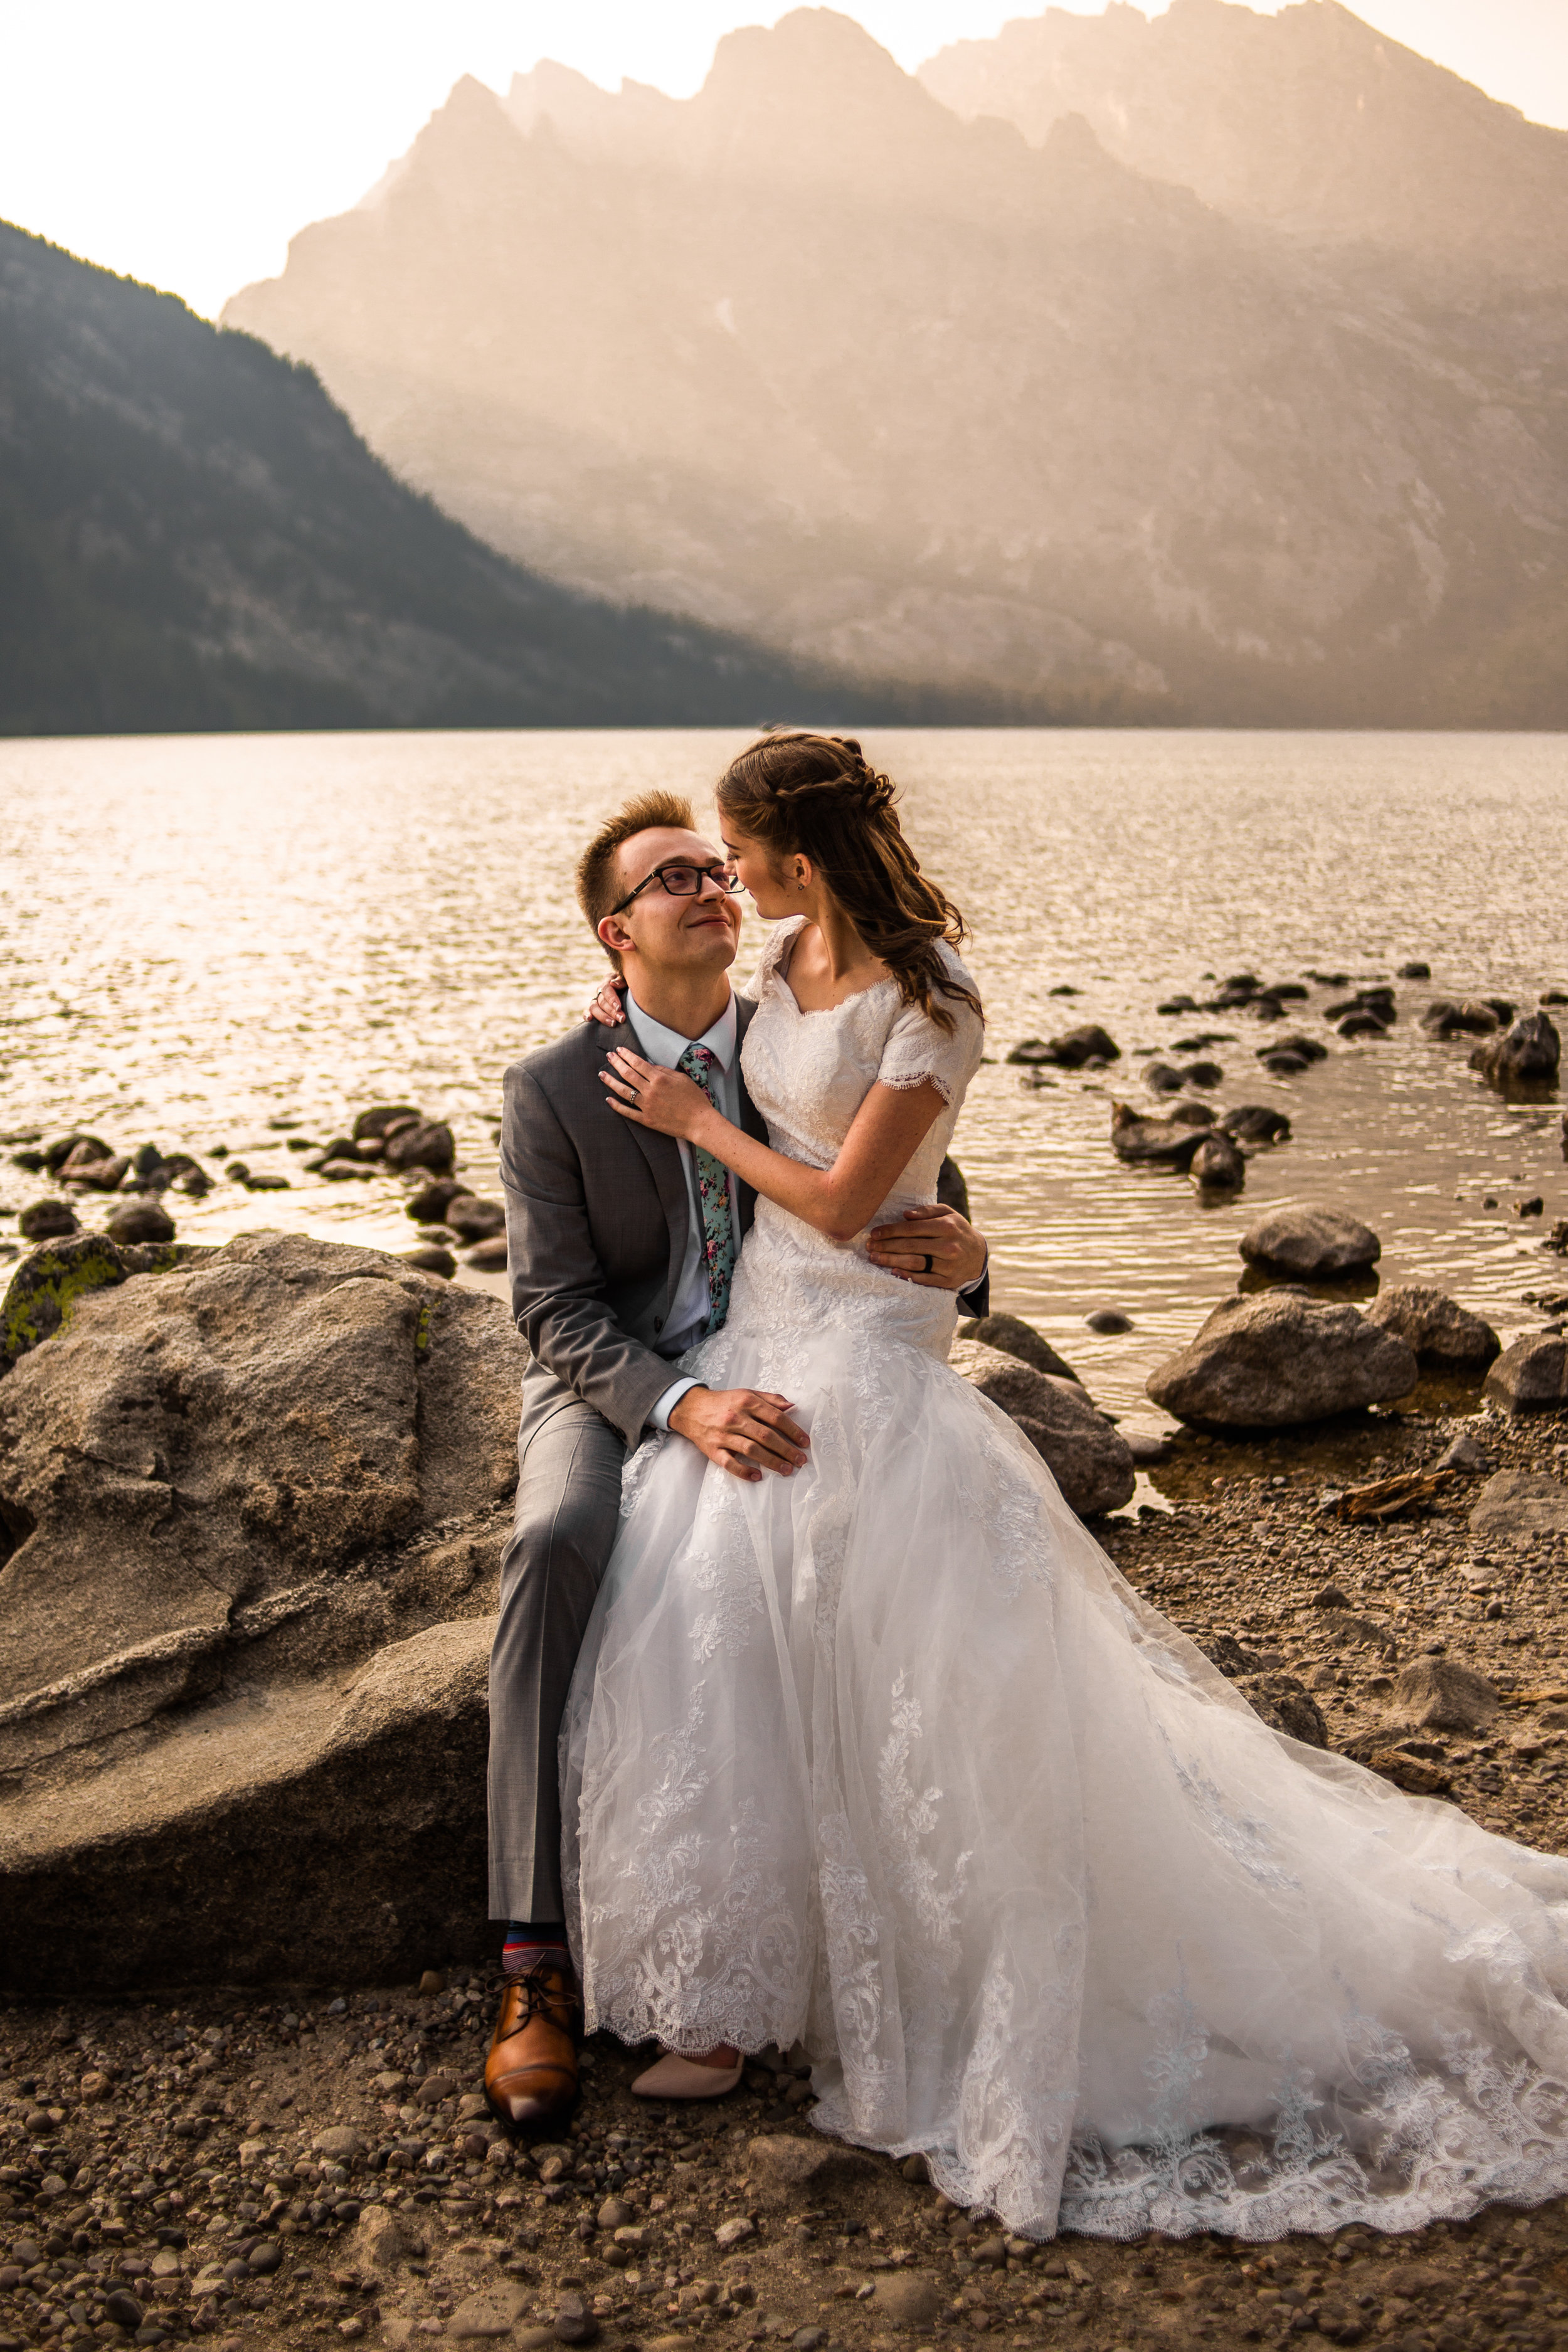 Grand-Teton-National-Park-Bridal-Session33.jpg